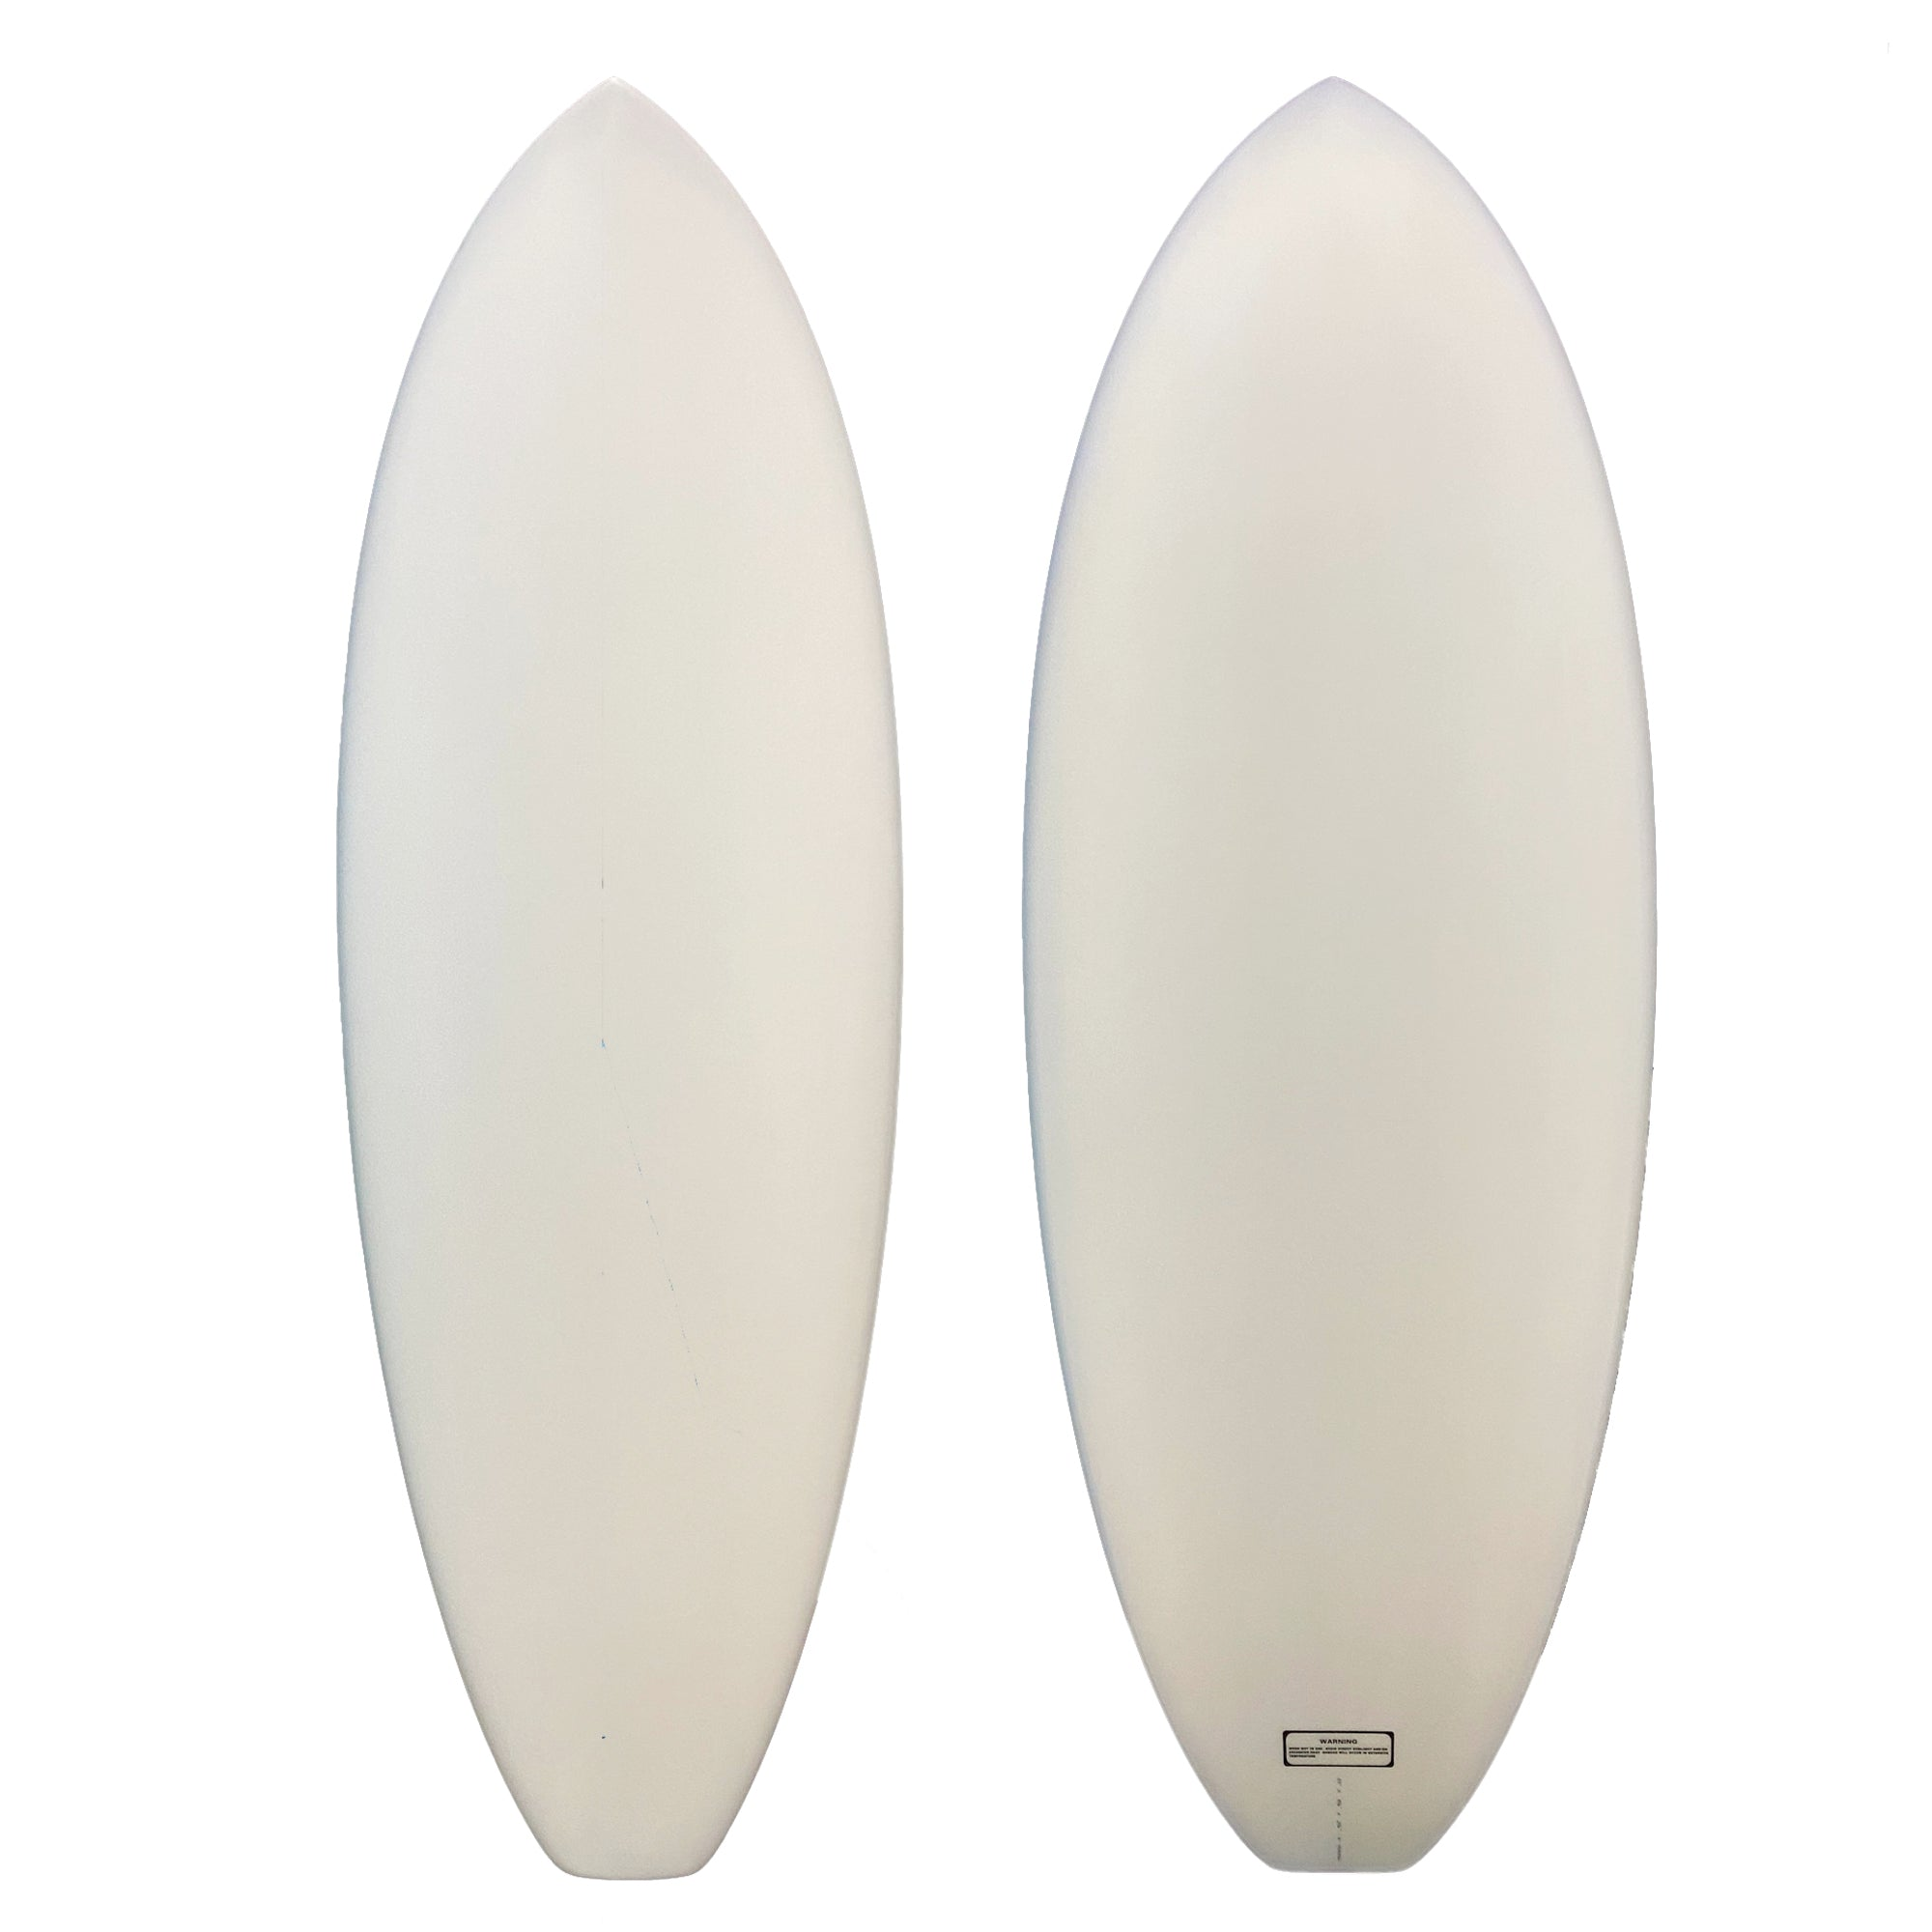 Blank Canvas Surfboard - Vertical